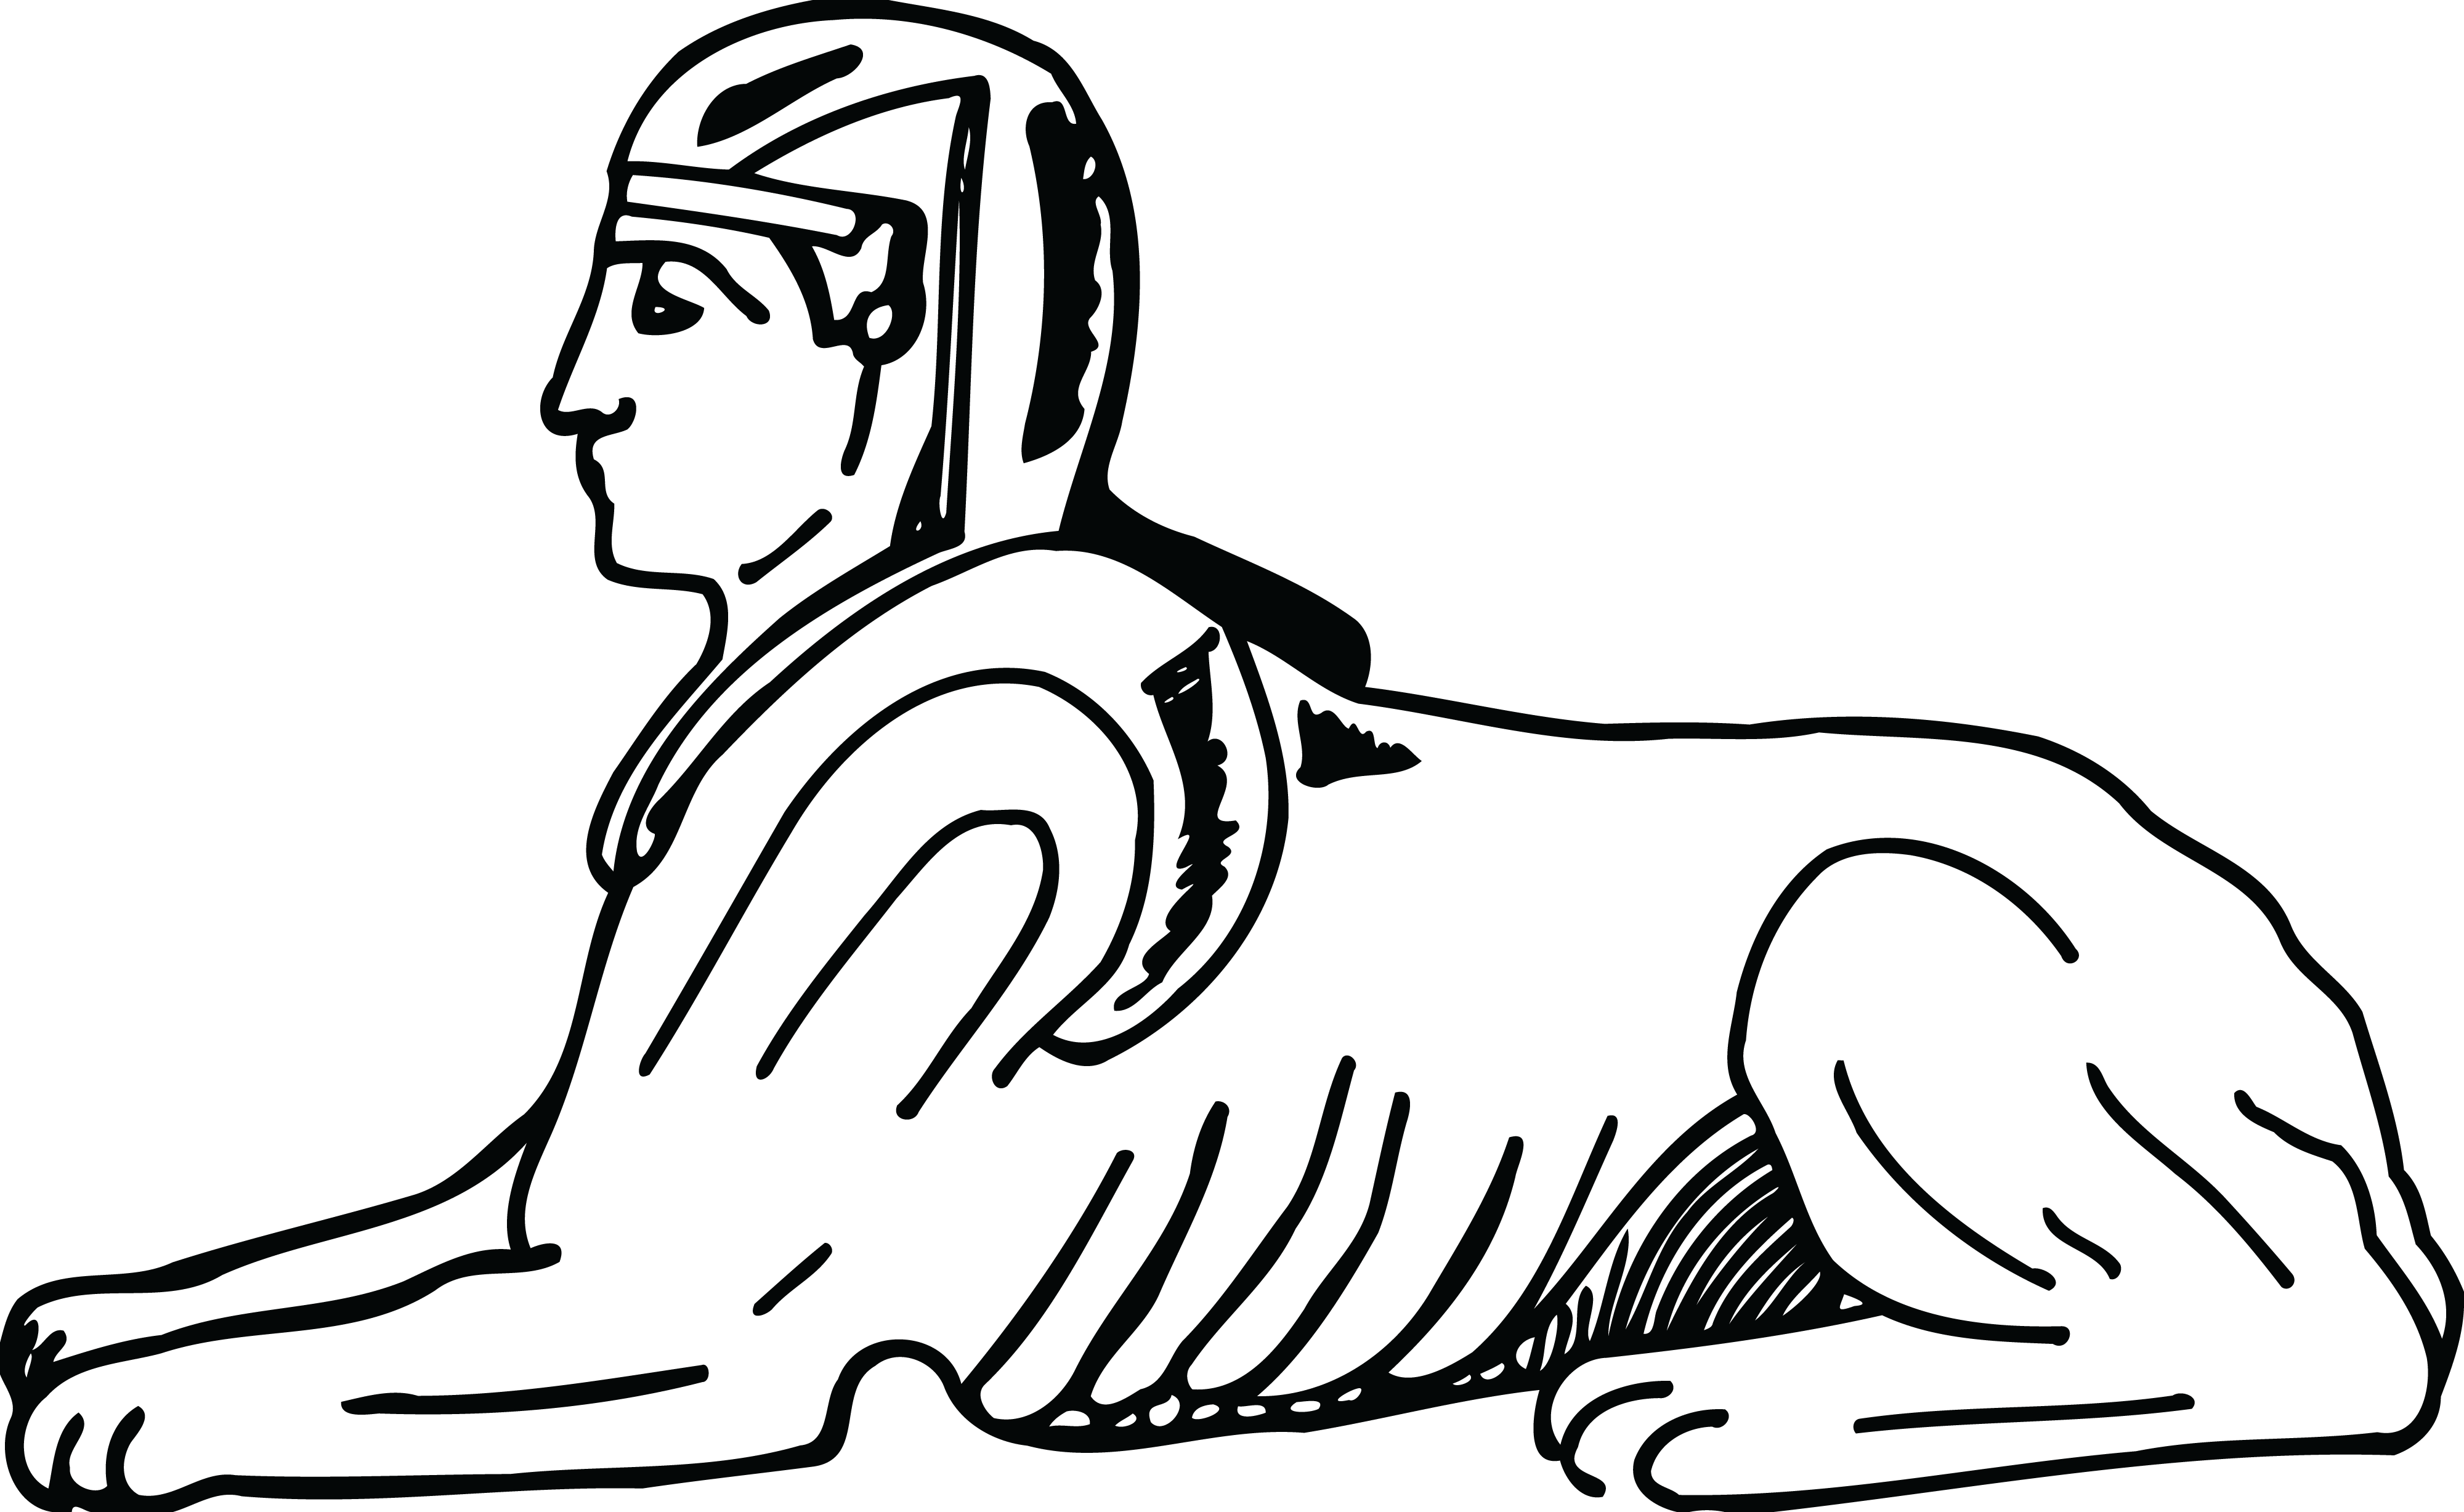 banner black and white download Egypt drawing. Sphinx at getdrawings com